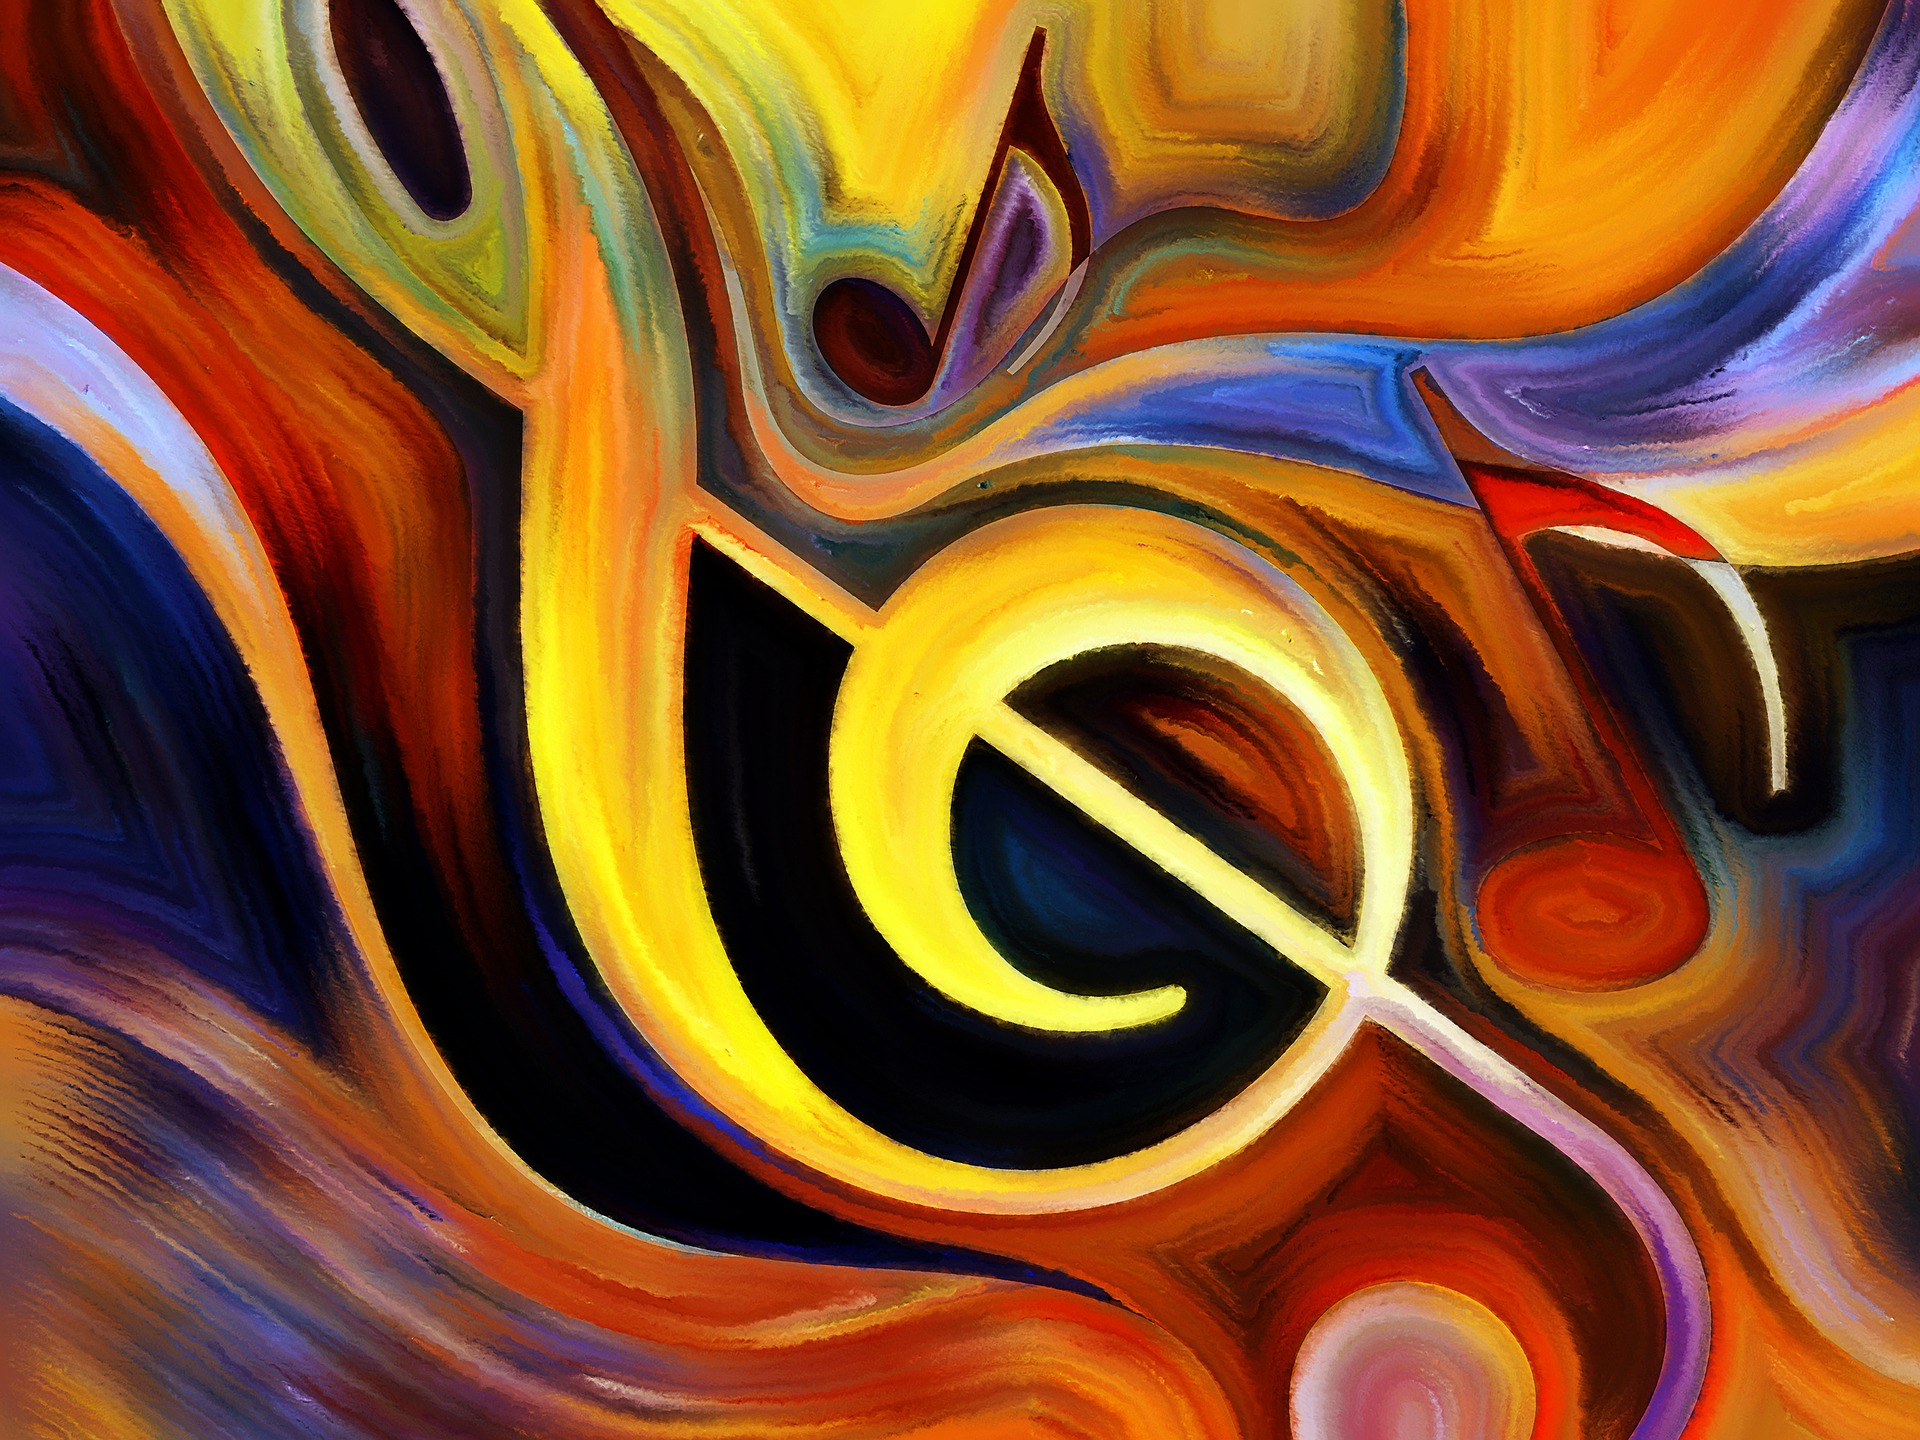 Music treble clef and notes painting